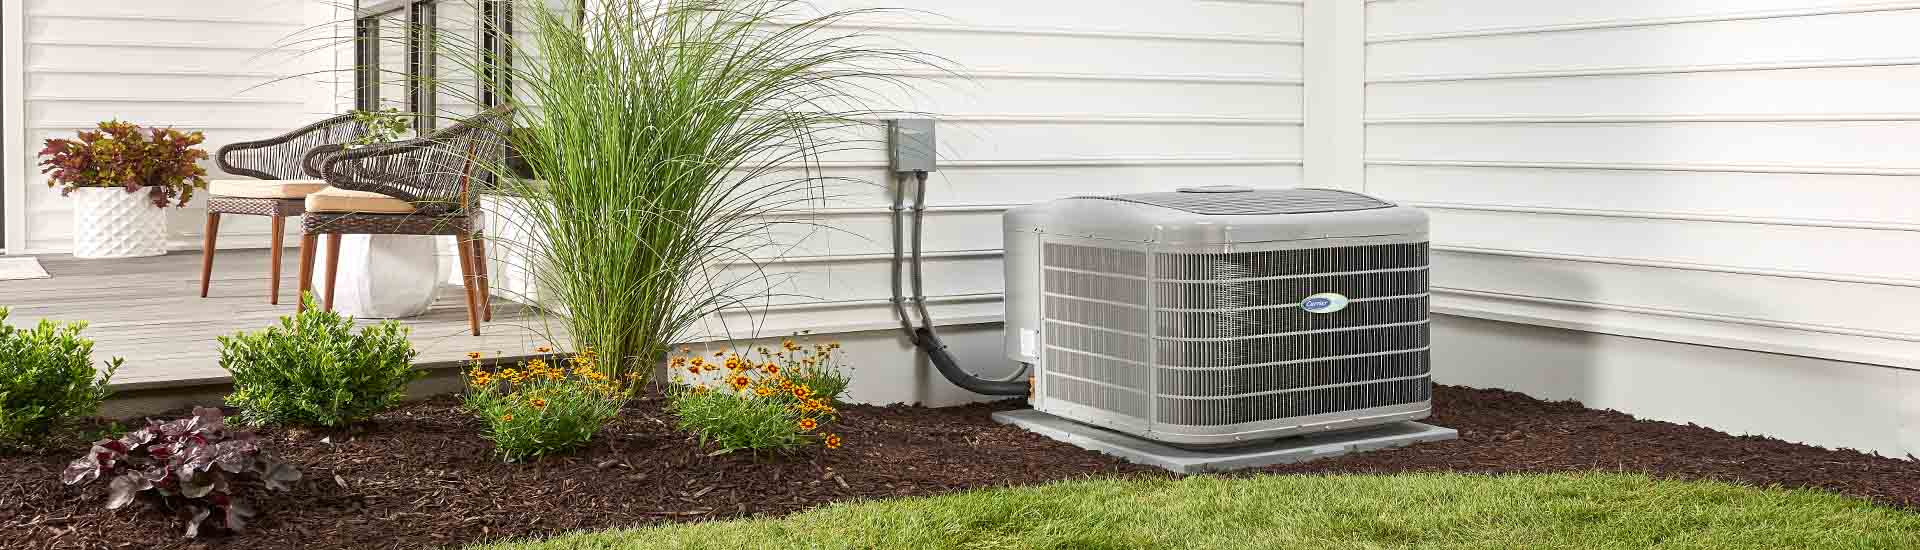 Air Conditioning Service in Boca Raton, Deerfield Beach, Fort Lauderdale